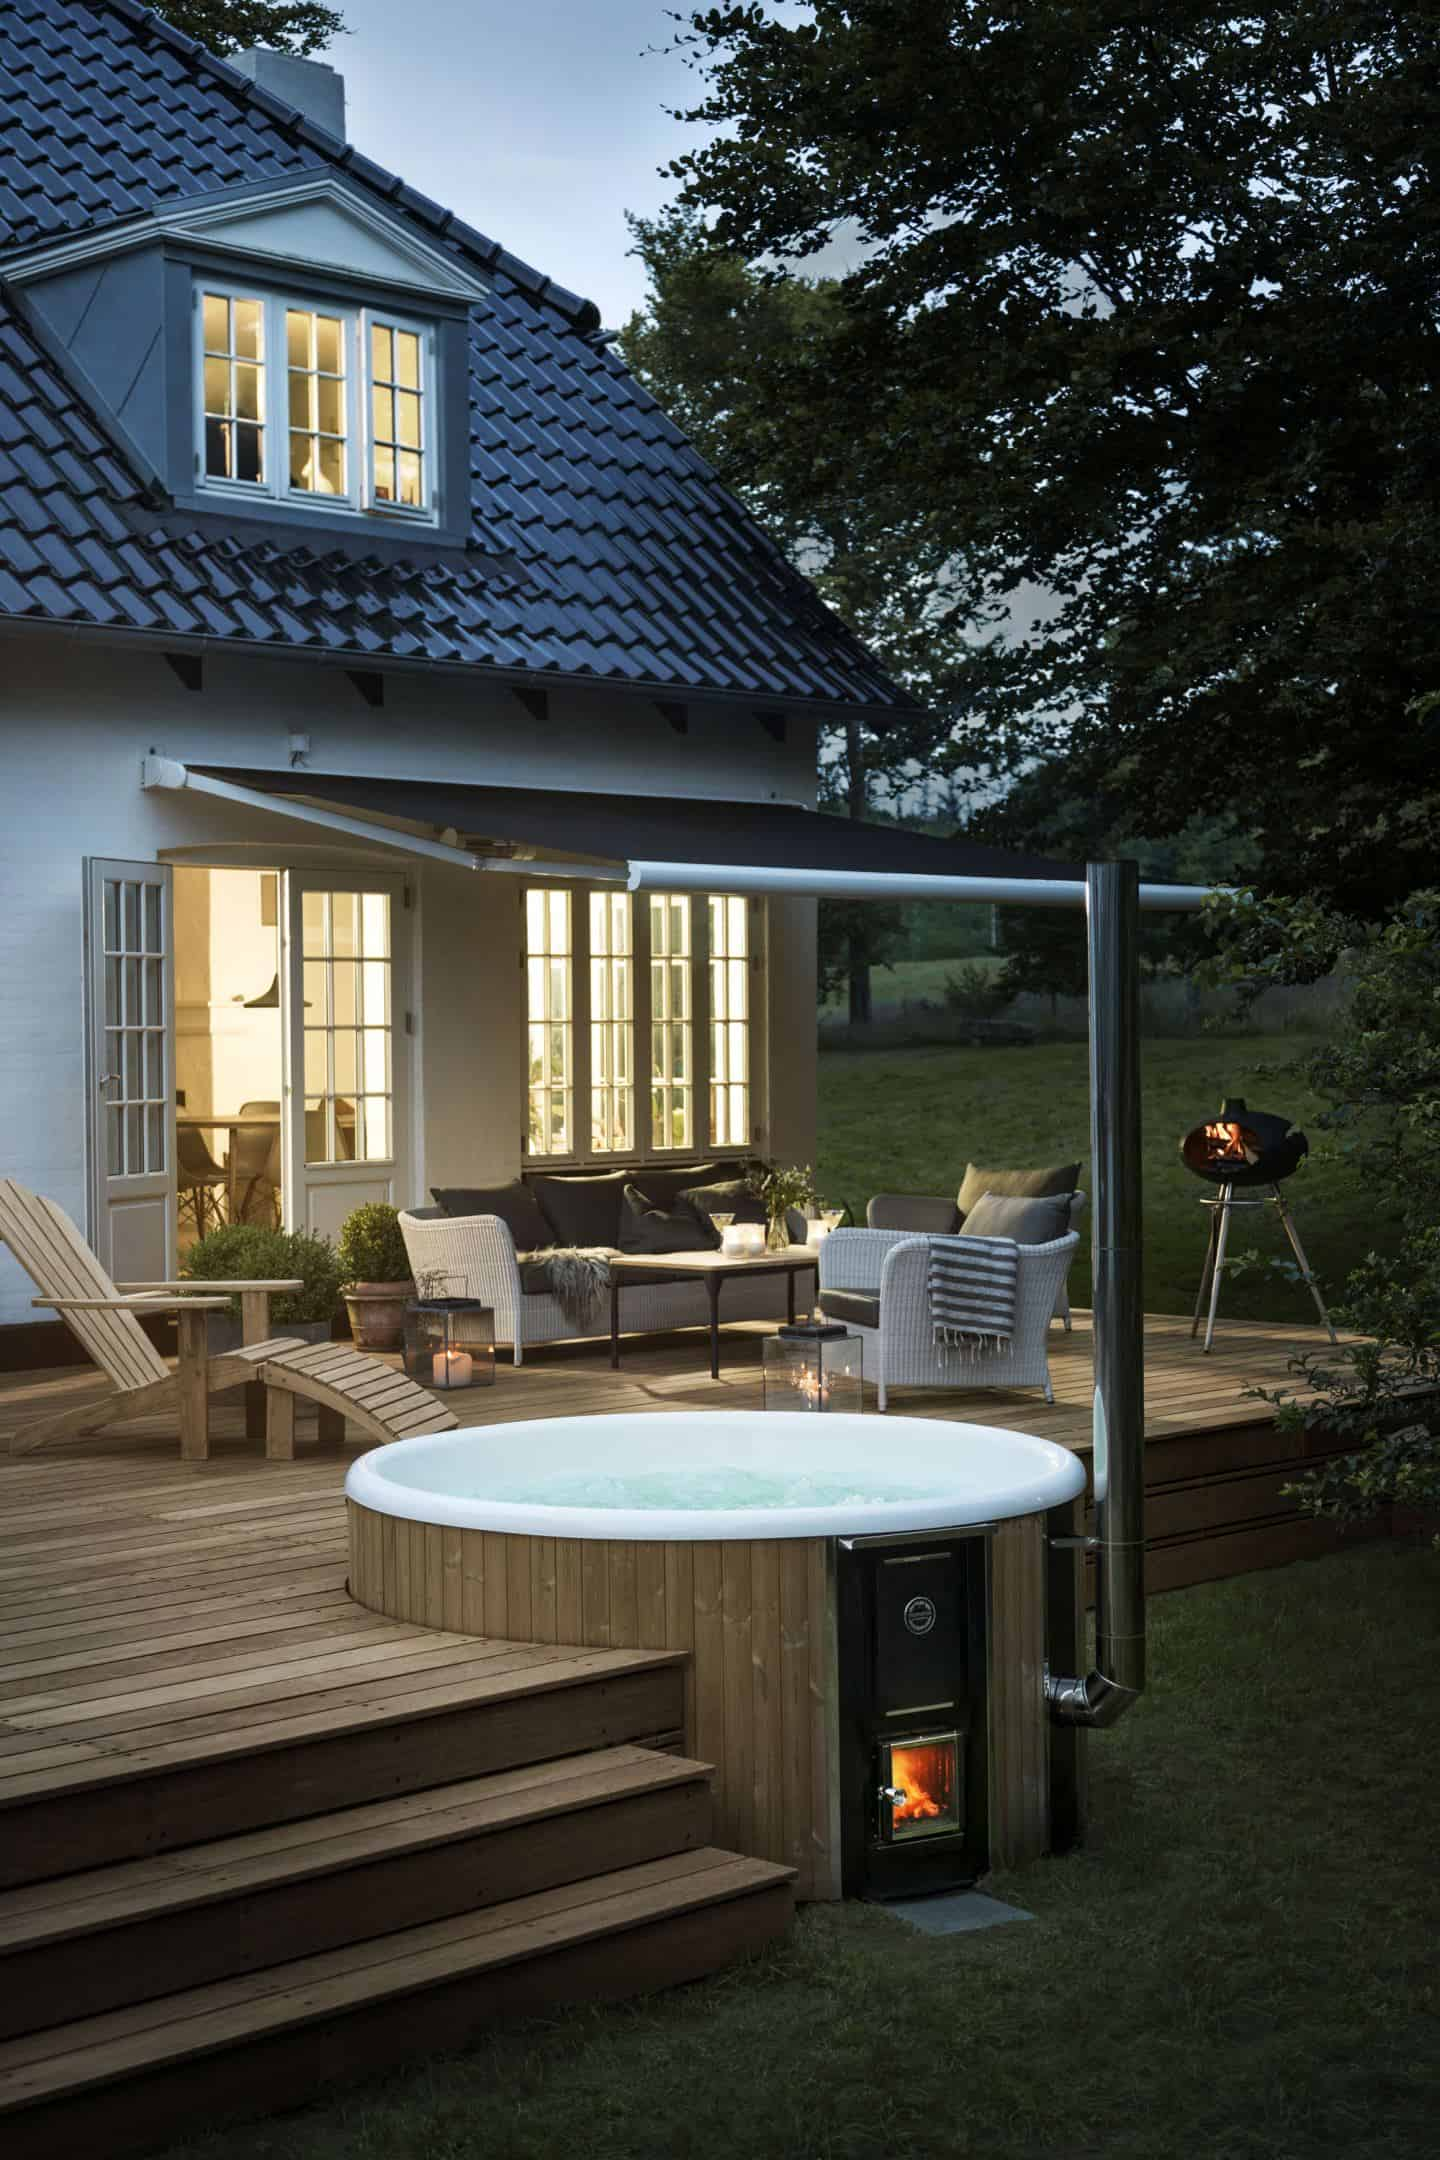 A luxurious wood-fired hot tub brings that holiday feeling to your summer staycation in your garden